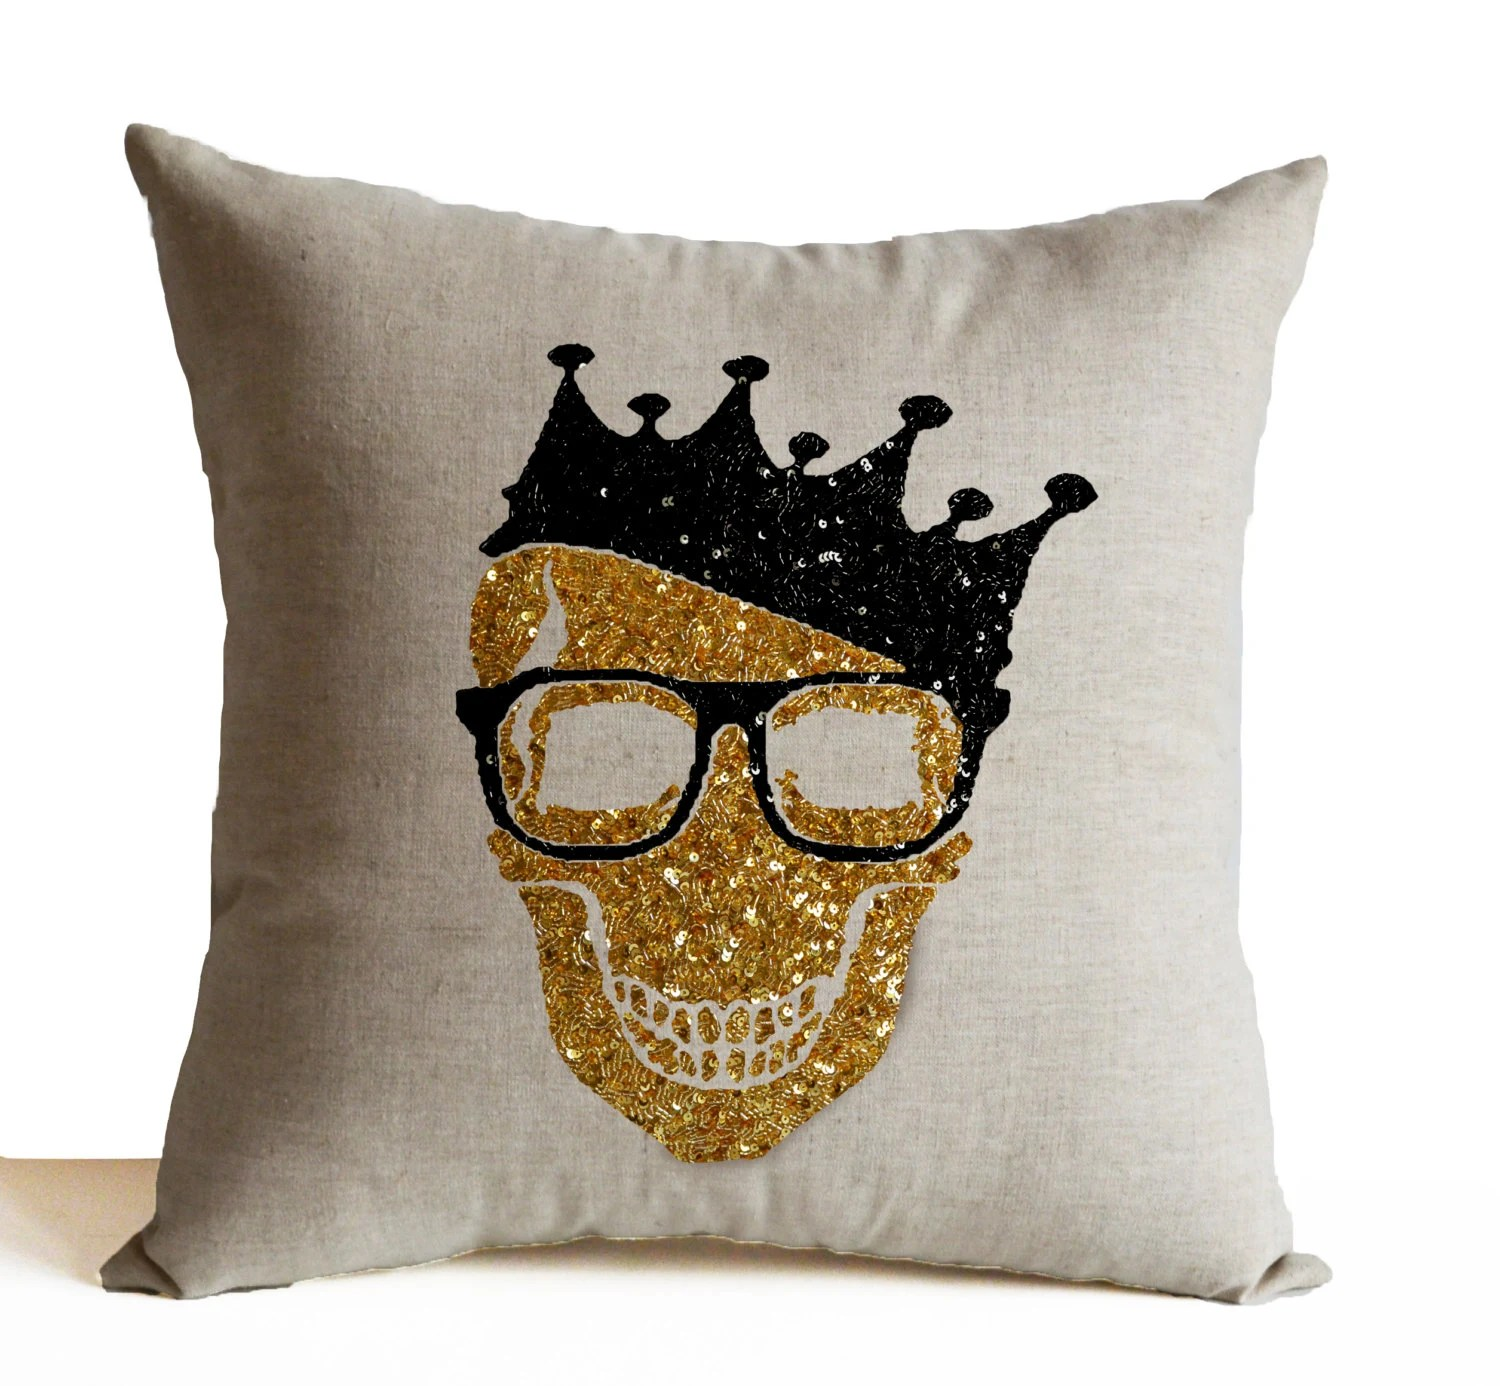 Skull Throw Pillow Cover Halloween Decorative Pillow Case